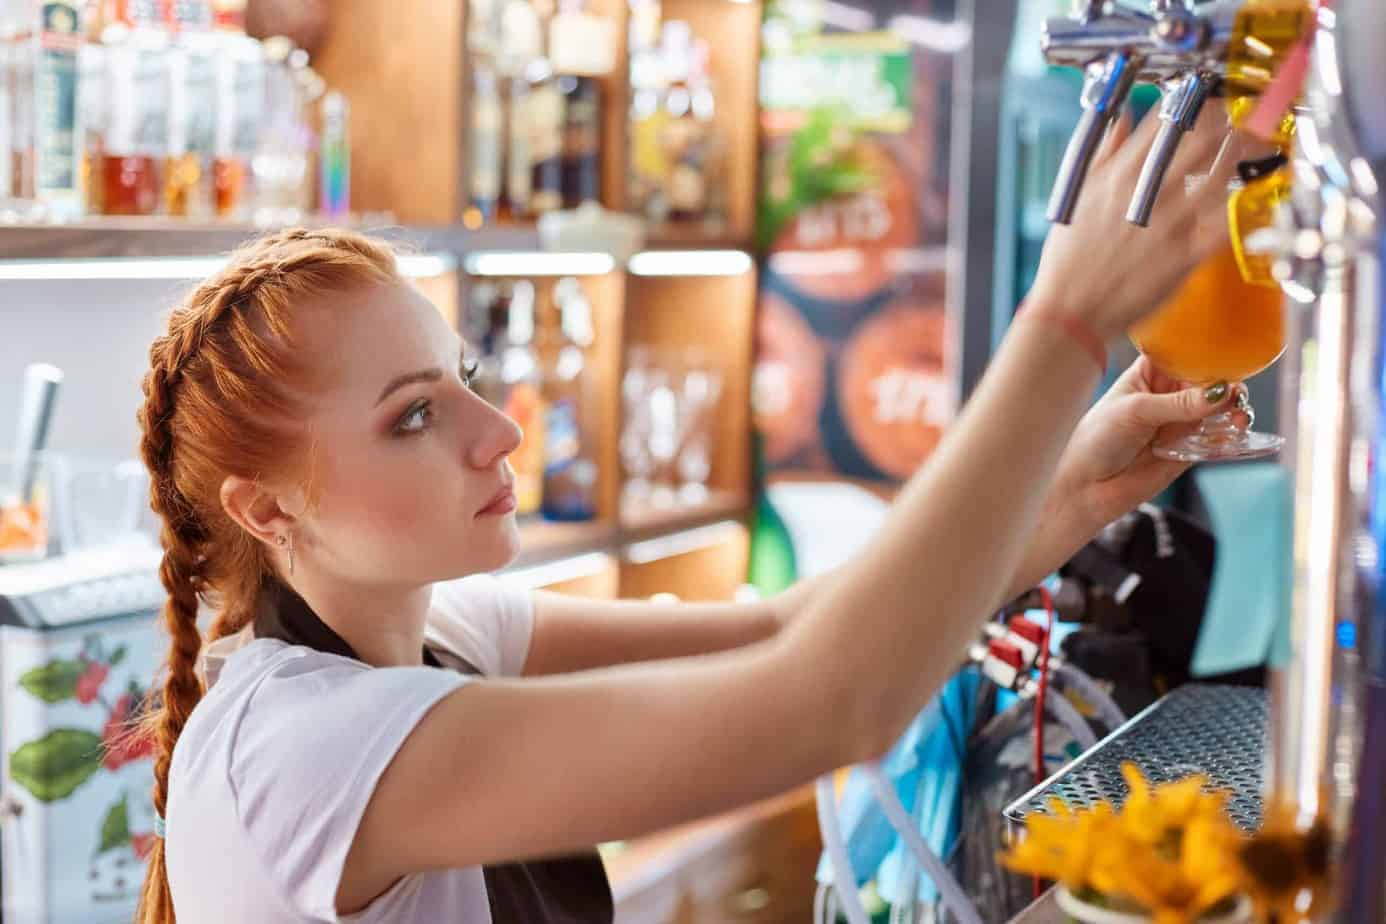 Female bartender tapping craft beer in bar, side view of red haired barman wearing white casual t shier and apron, looks serious, being concentrated on her work.